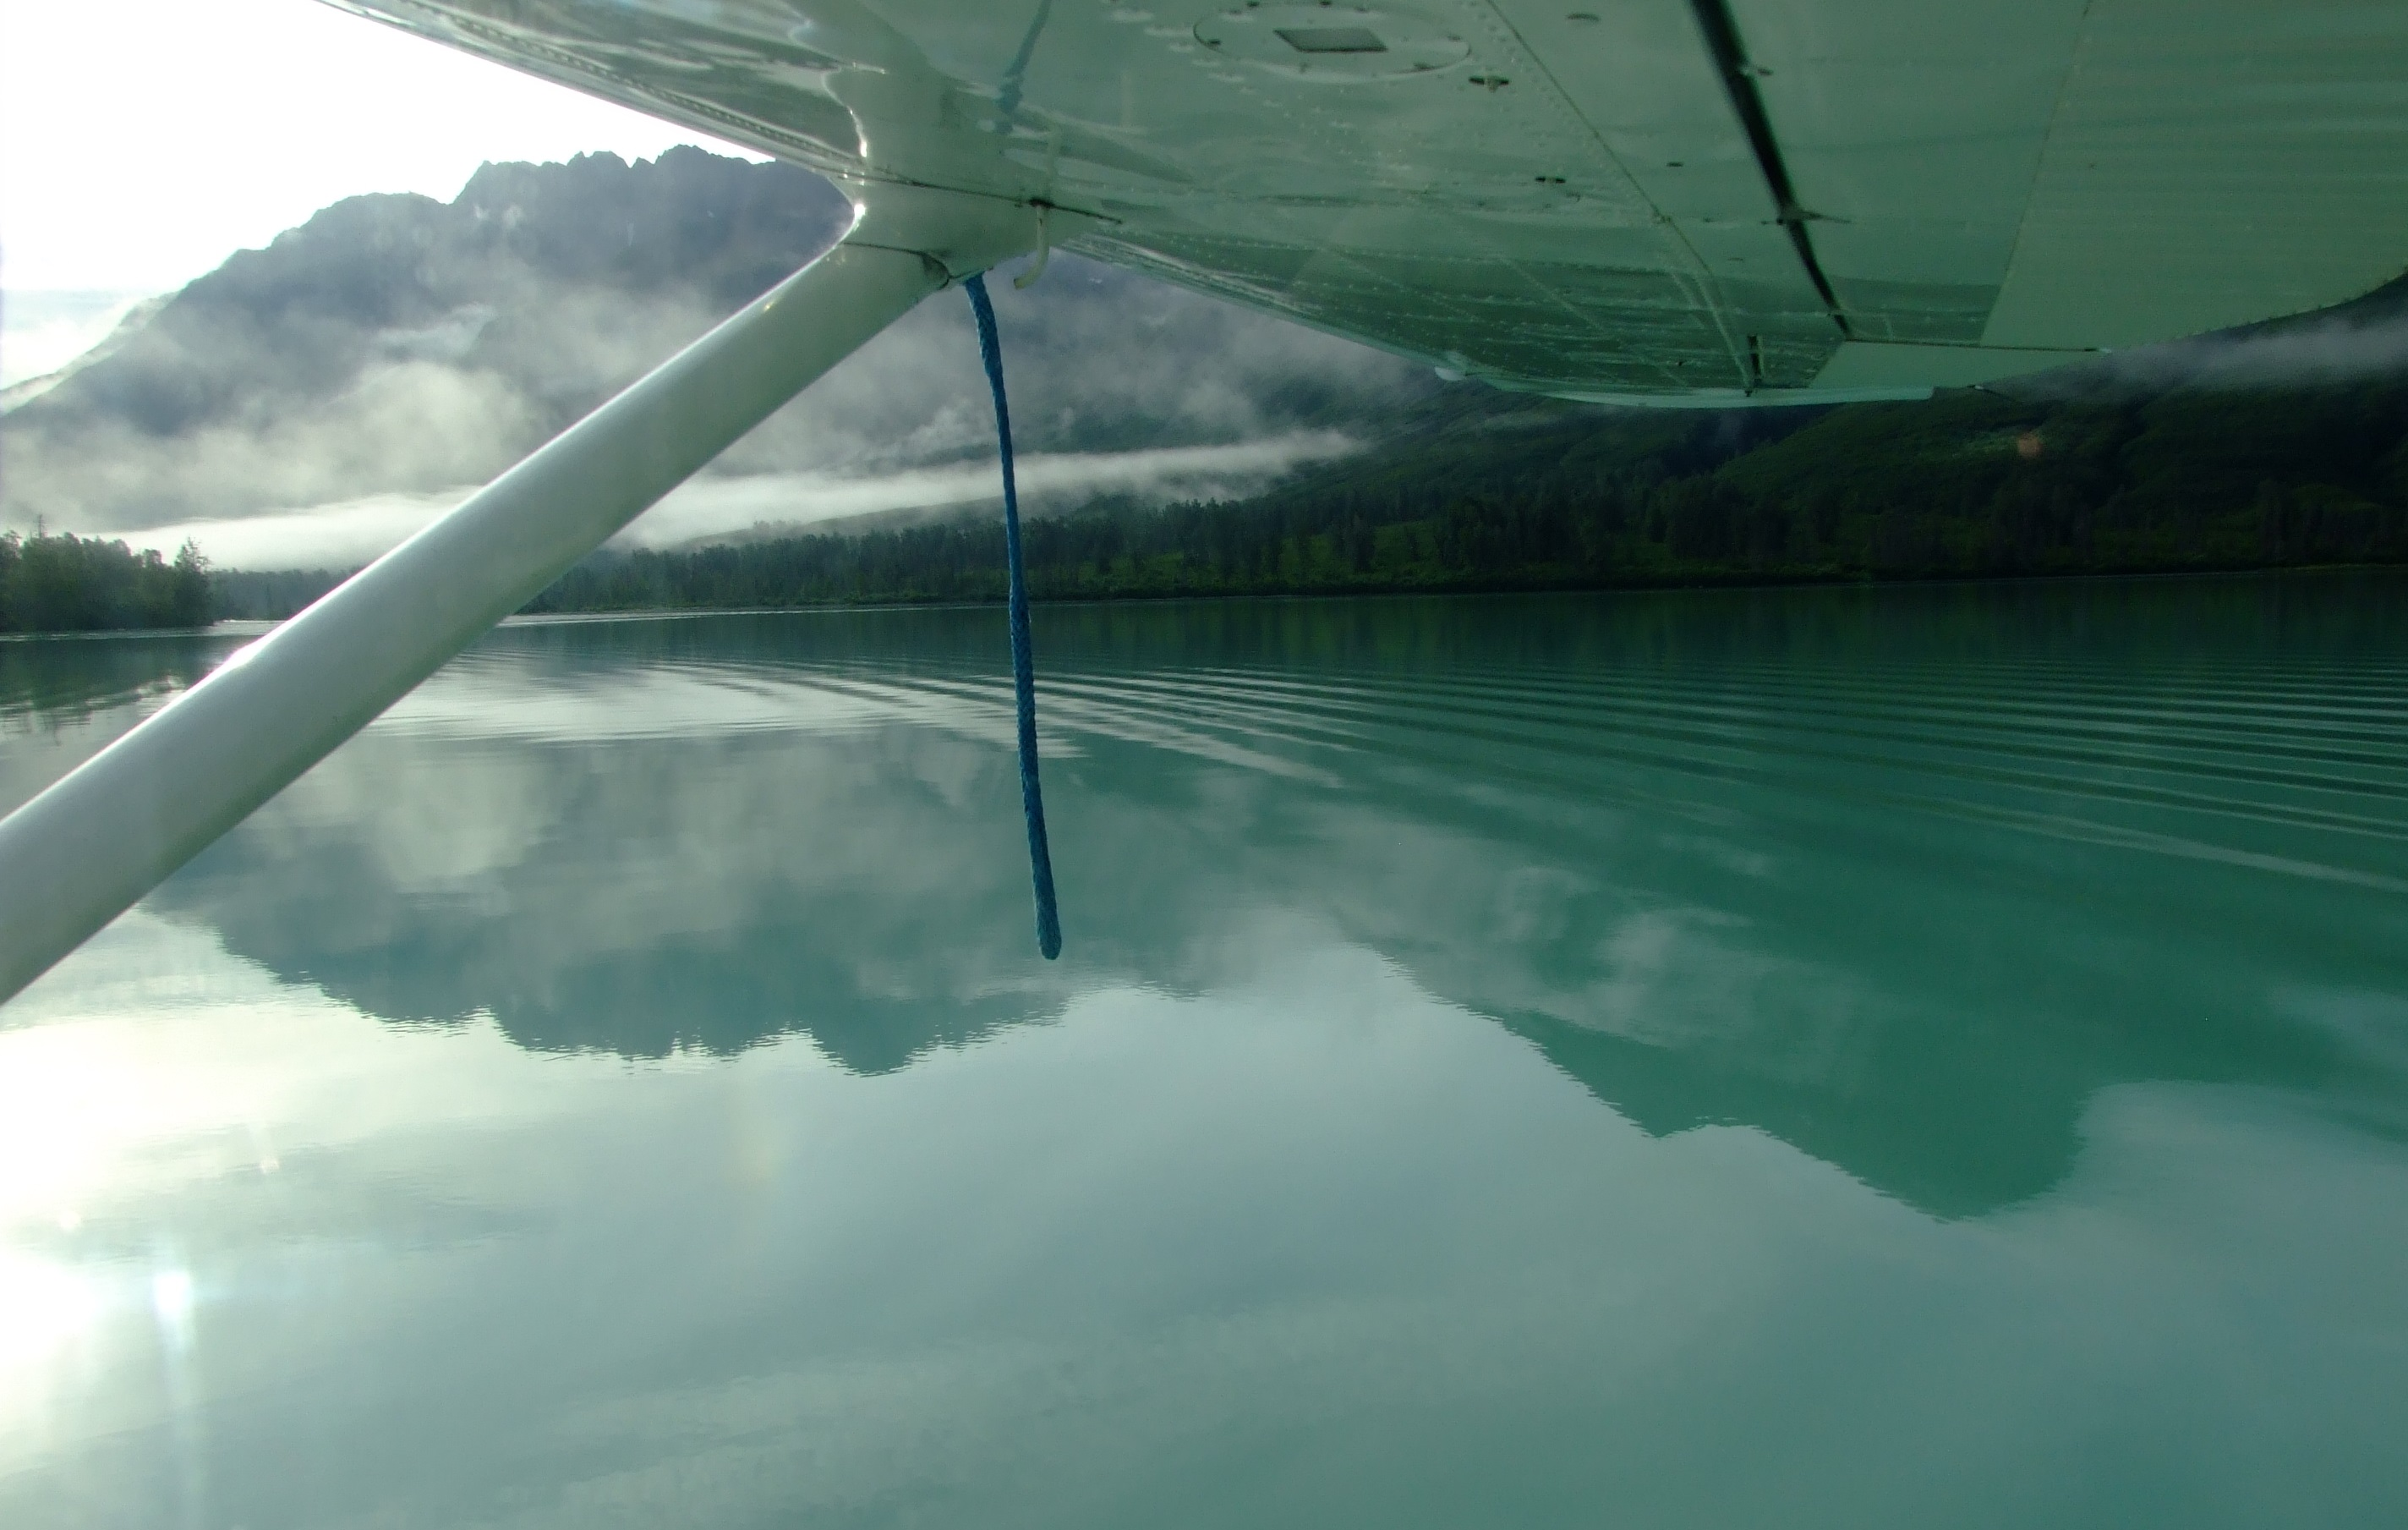 From the surface of the lake there is a greener or more turquoise hue to the water. Our landing was like all our landings with Steller Air. Smooth.